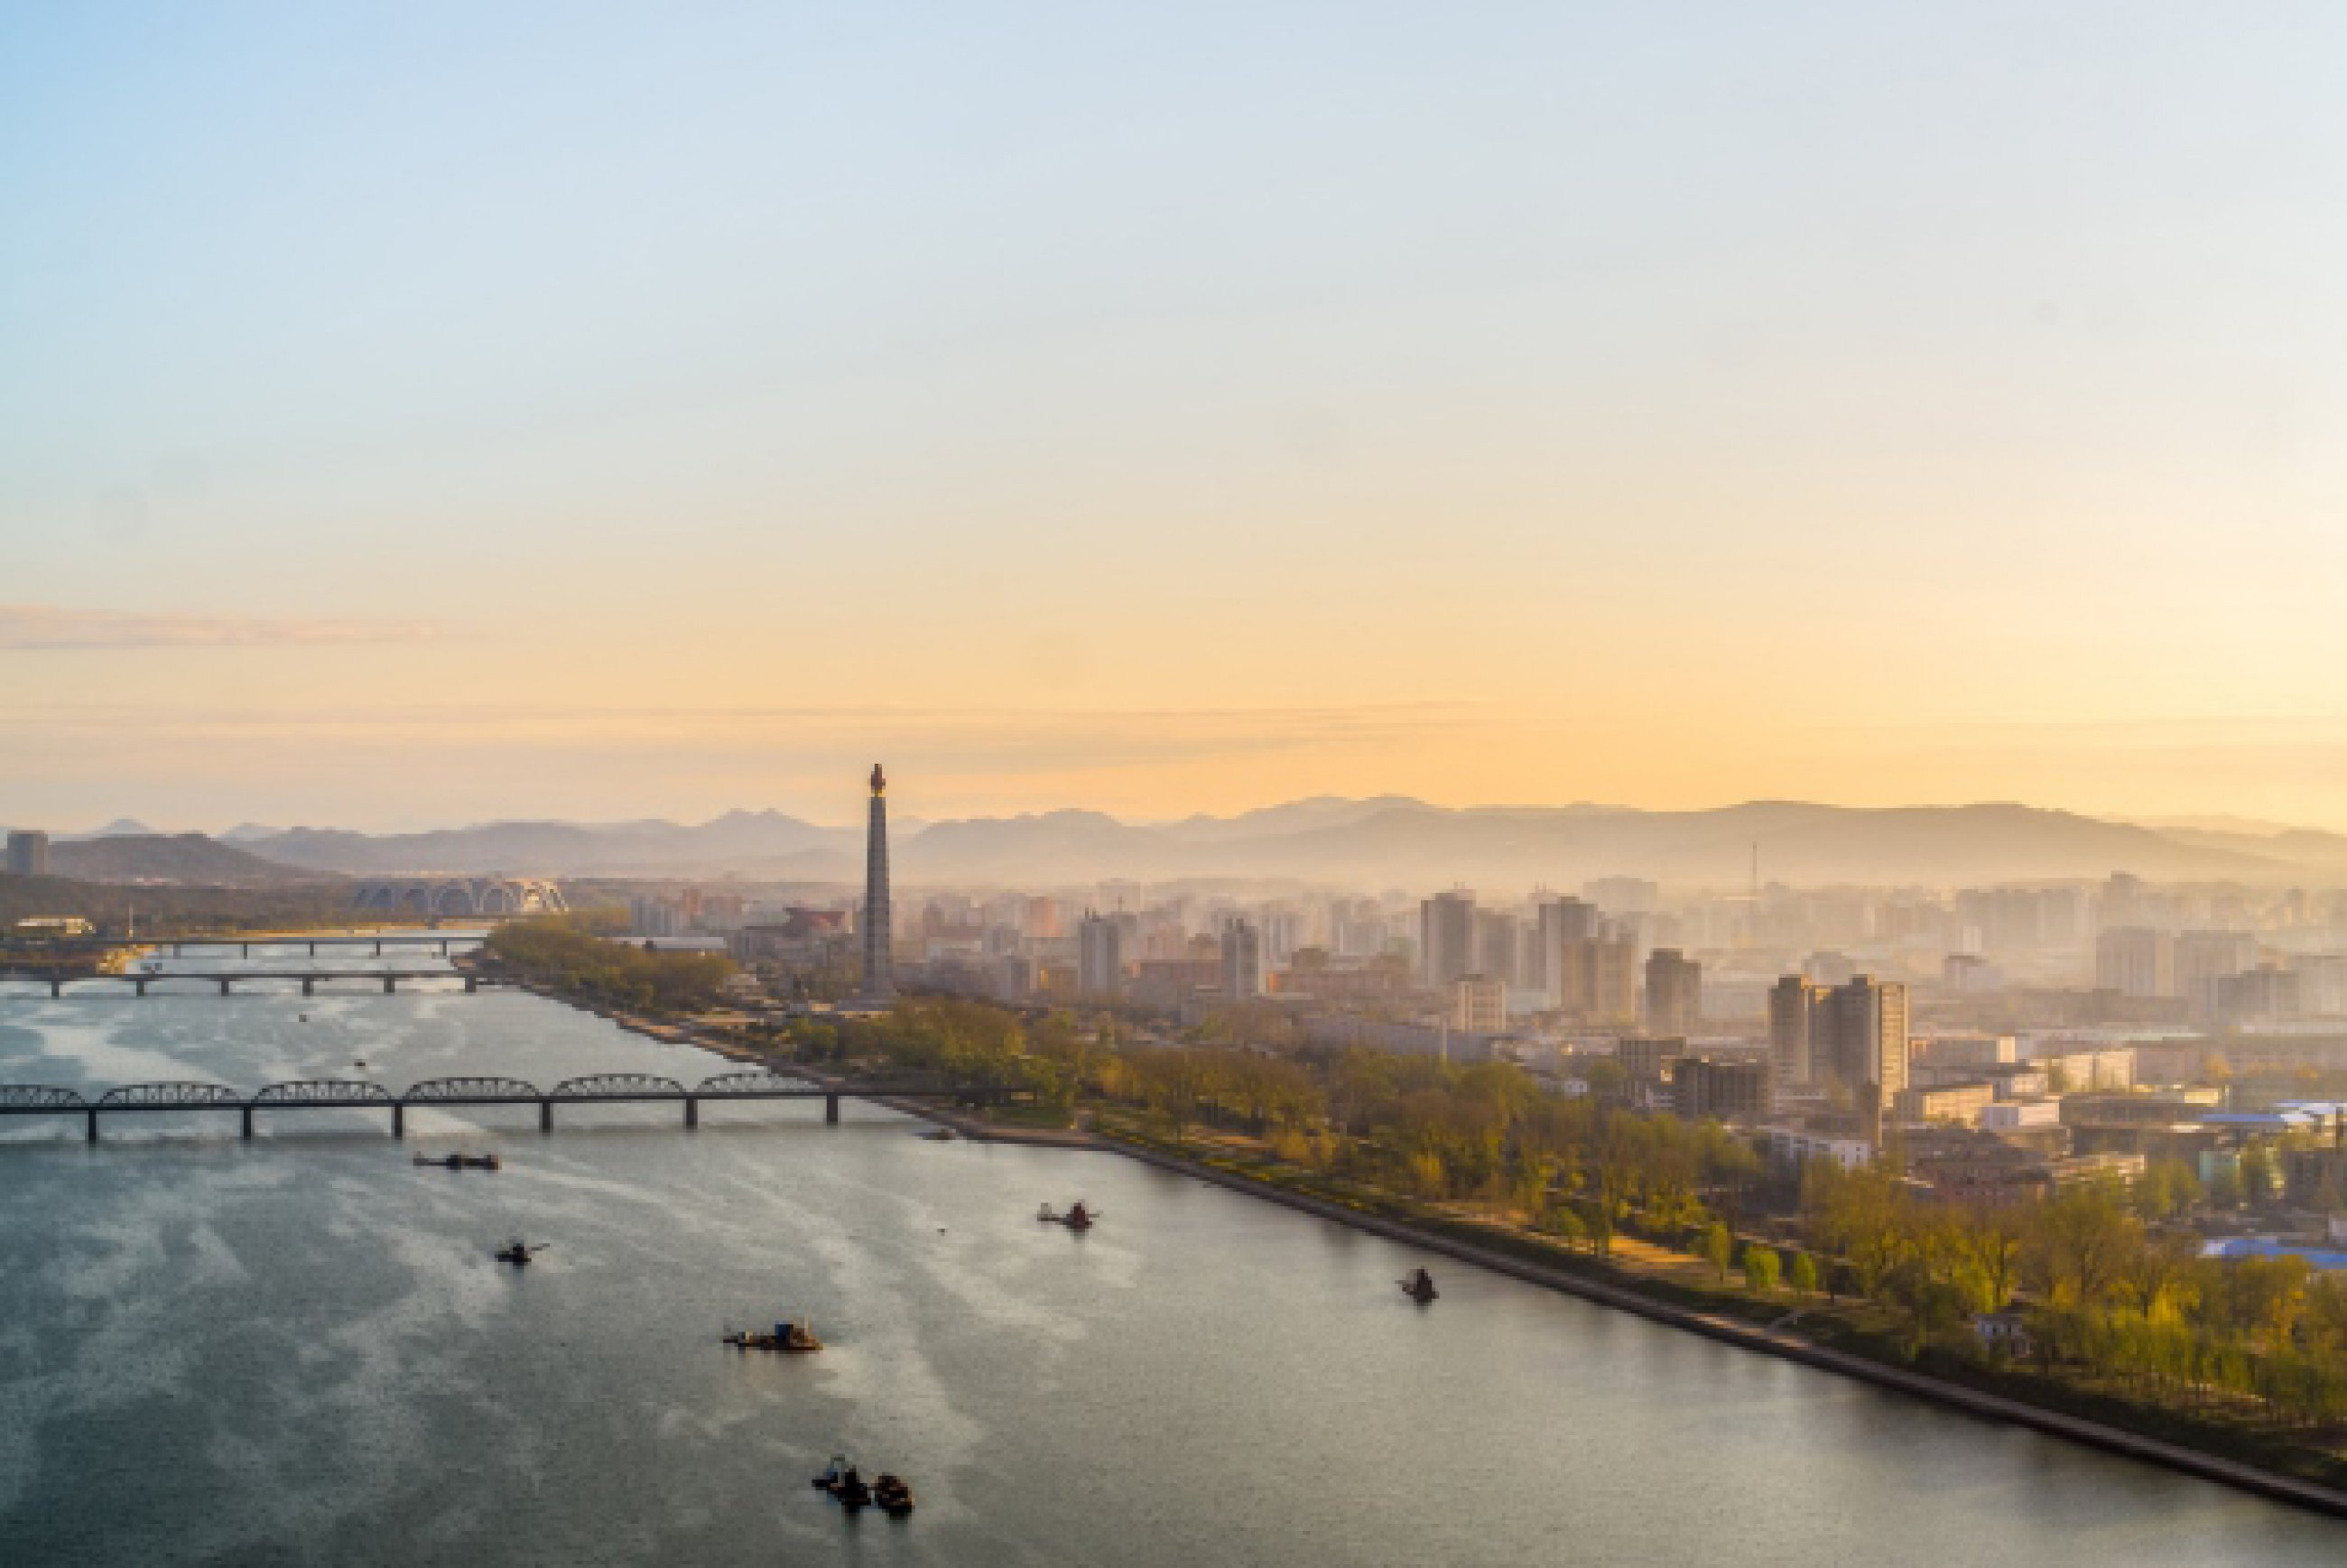 https://bubo.sk/uploads/galleries/7452/view-of-the-pyongyang-city-and-tucheto-river-capital-of-the-north-korea.jpg